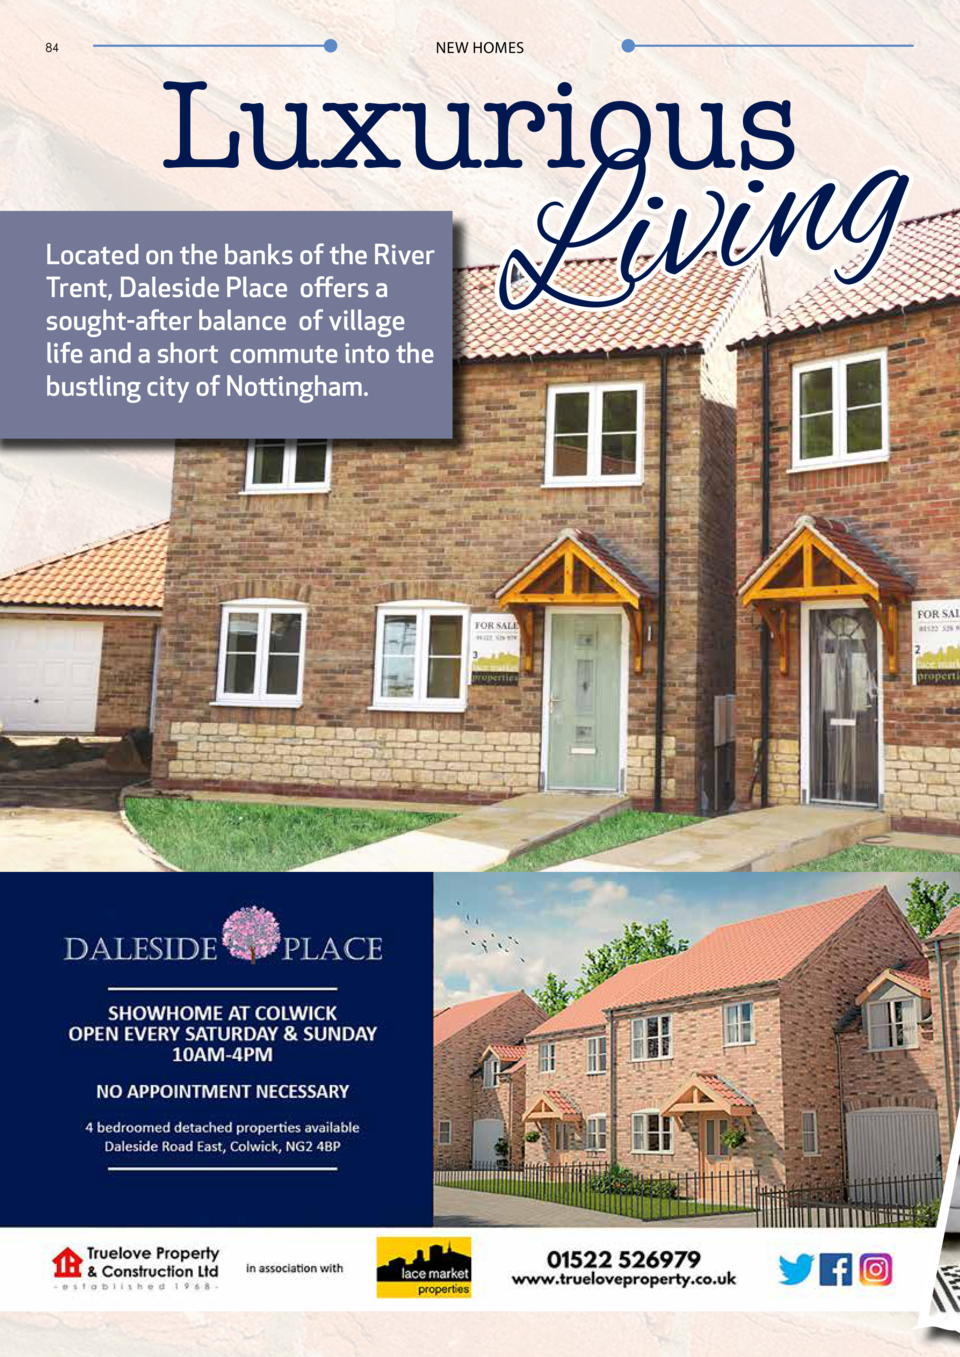 84  NEW HOMES  Luxurious  Located on the banks of the River Trent, Daleside Place offers a sought-after balance of village...